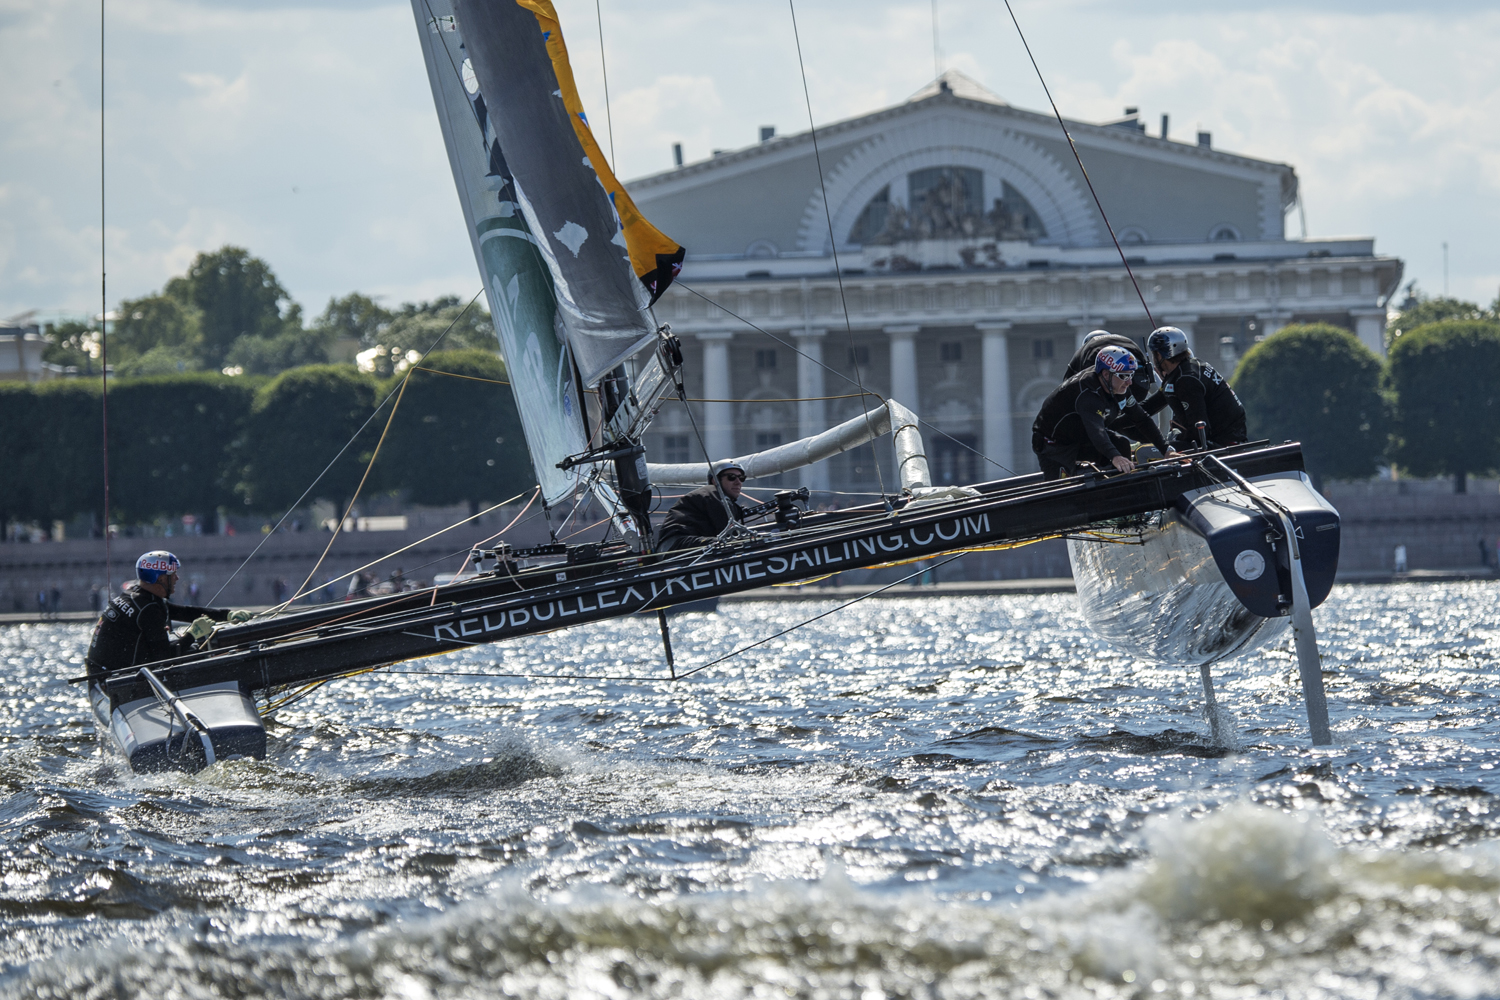 The Red Bull Extreme Sailing Team during the Extreme Sailing Series Act 4 in Saint Petersburg, Russia.